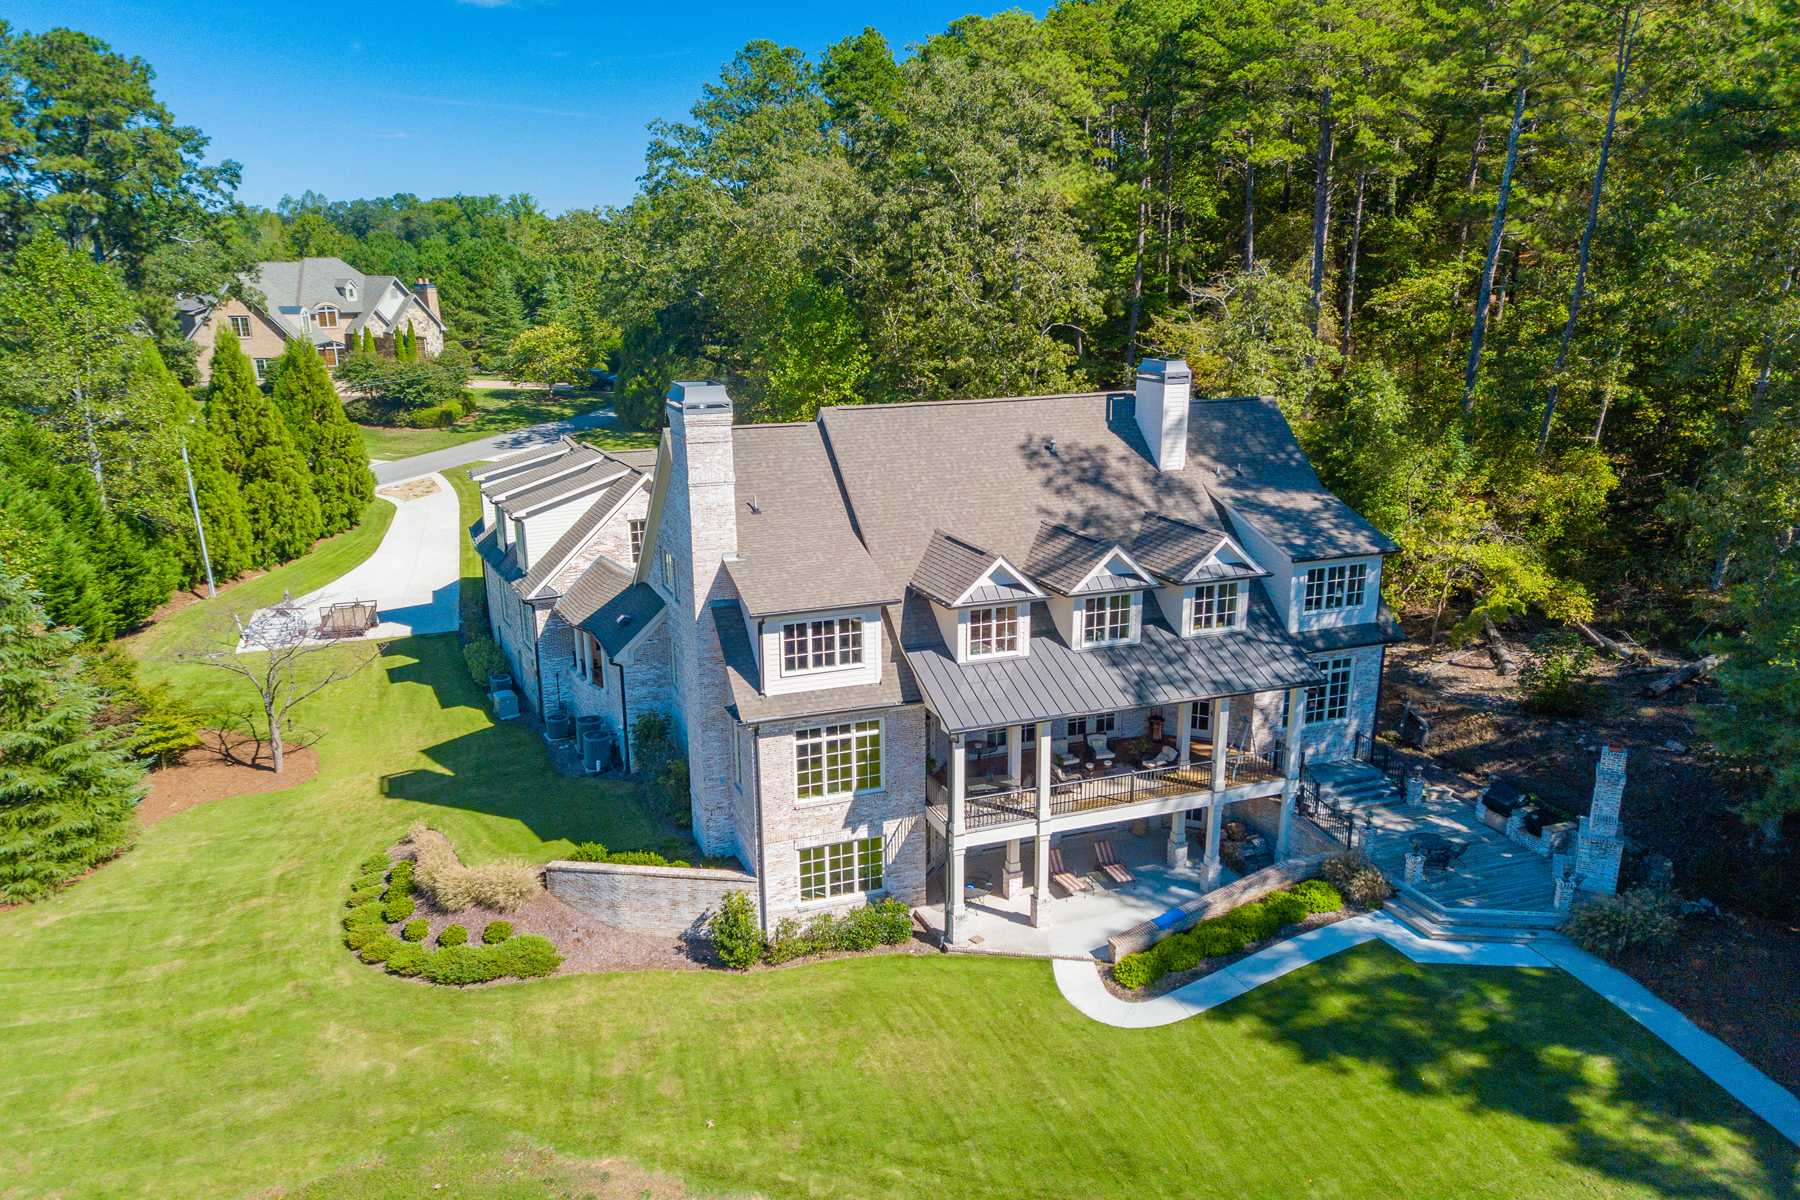 Single Family Homes for Sale at Spectacular Lake Home On Lanier's South End 4763 Propes Drive Oakwood, Georgia 30566 United States